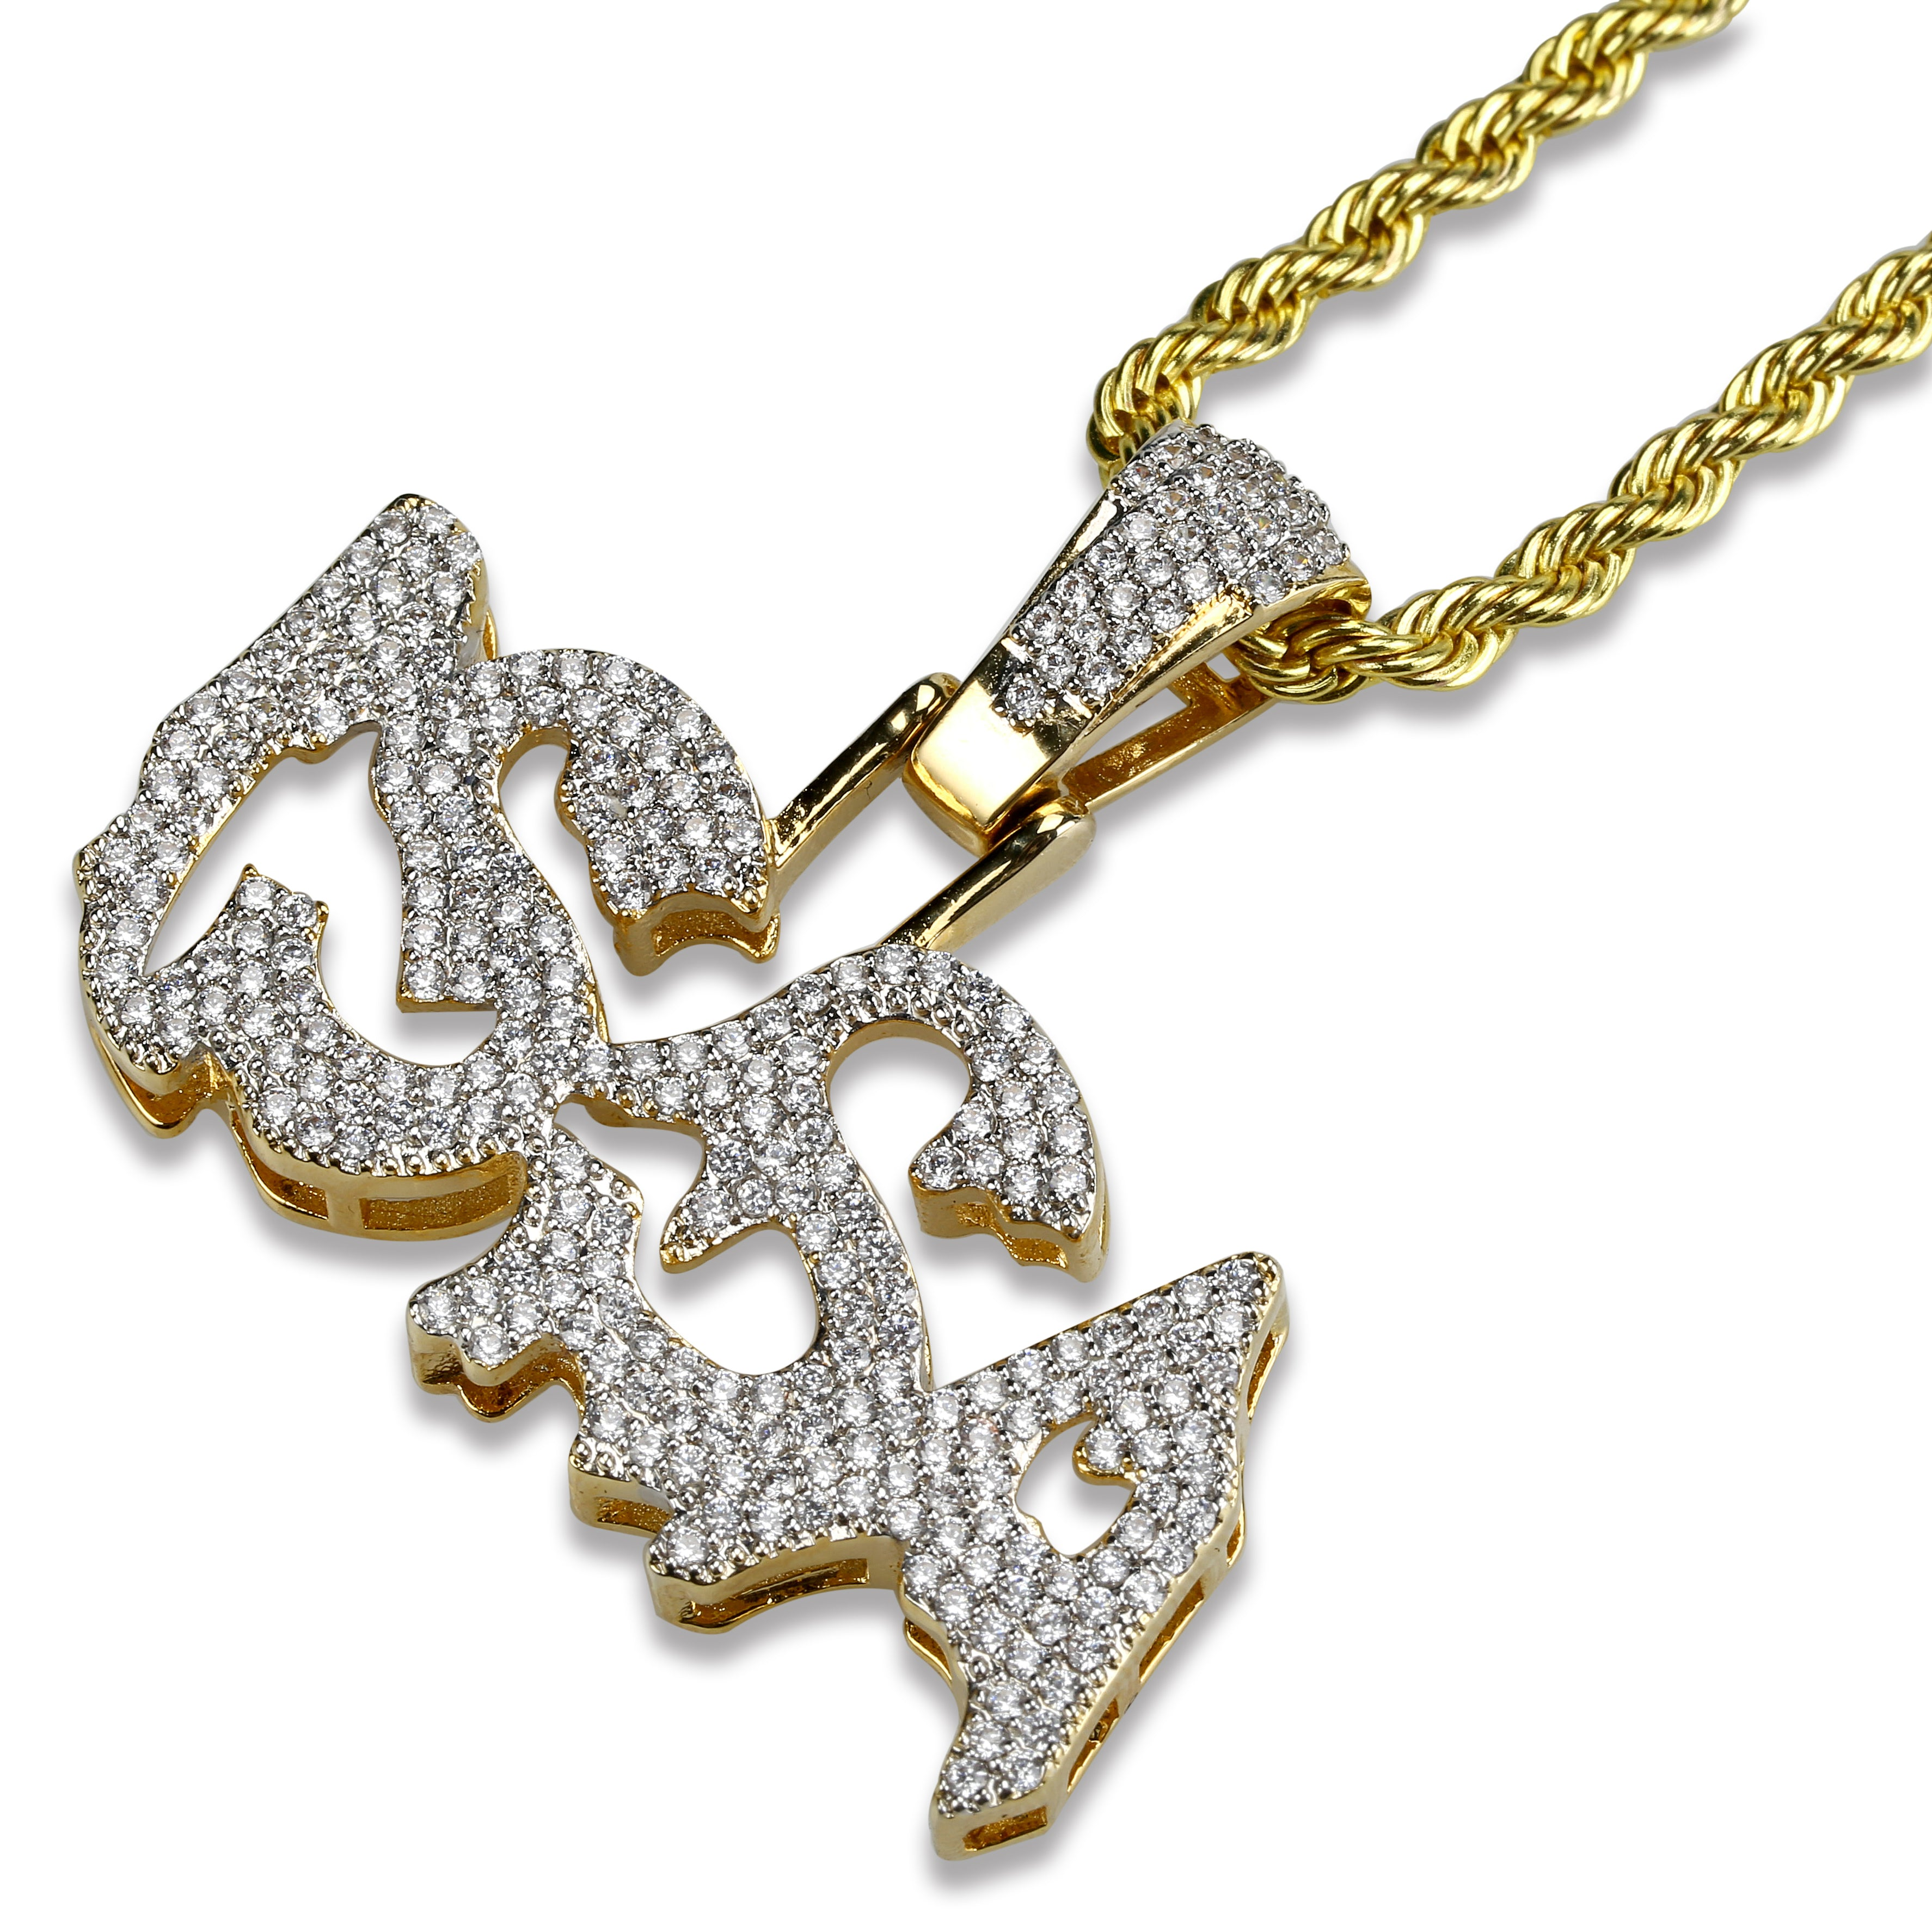 18K Gold Diamonds ISSA Pendant